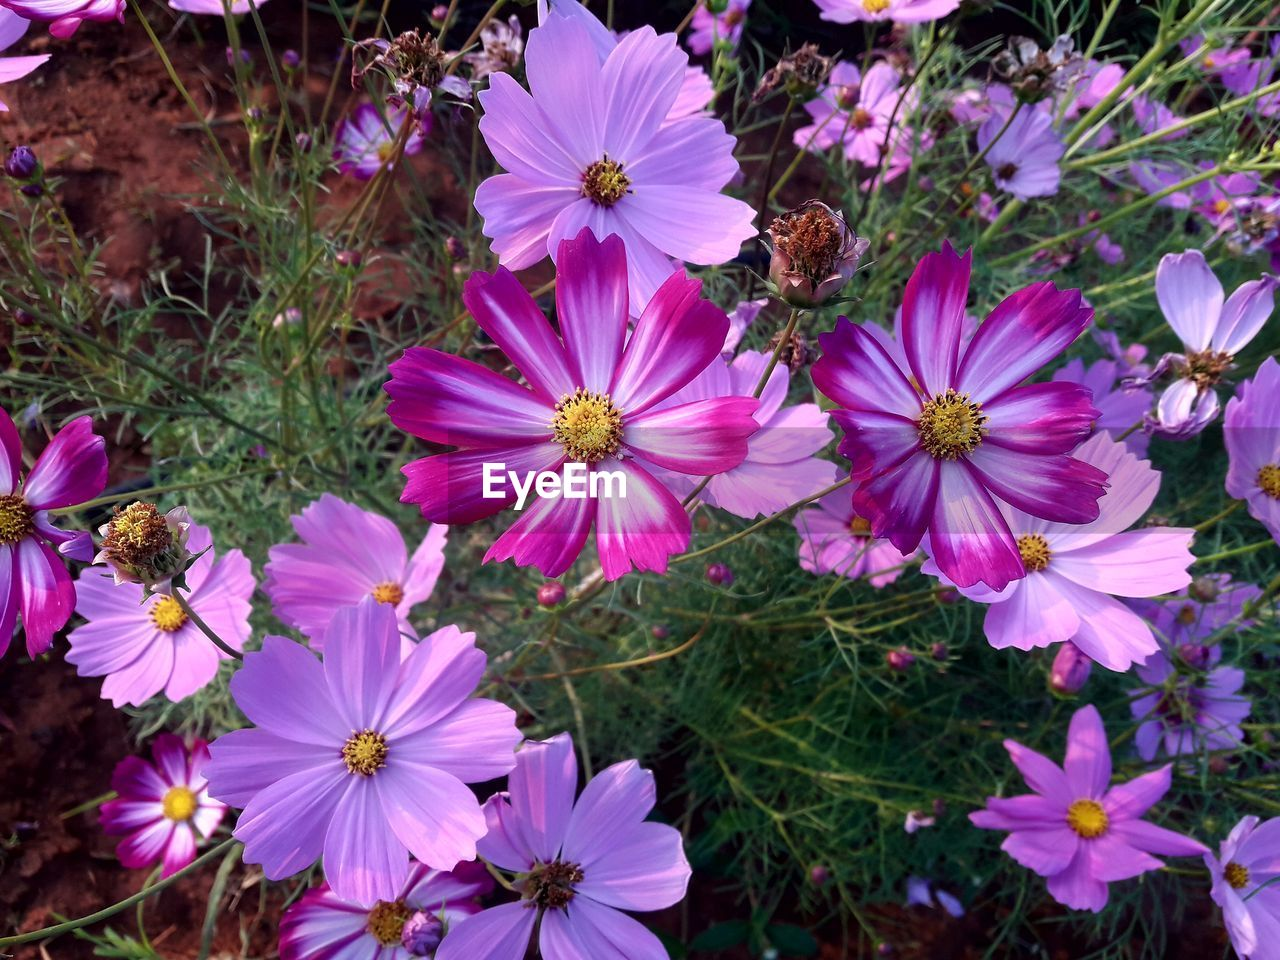 flower, growth, petal, nature, plant, fragility, beauty in nature, flower head, no people, field, freshness, high angle view, blooming, outdoors, day, close-up, grass, osteospermum